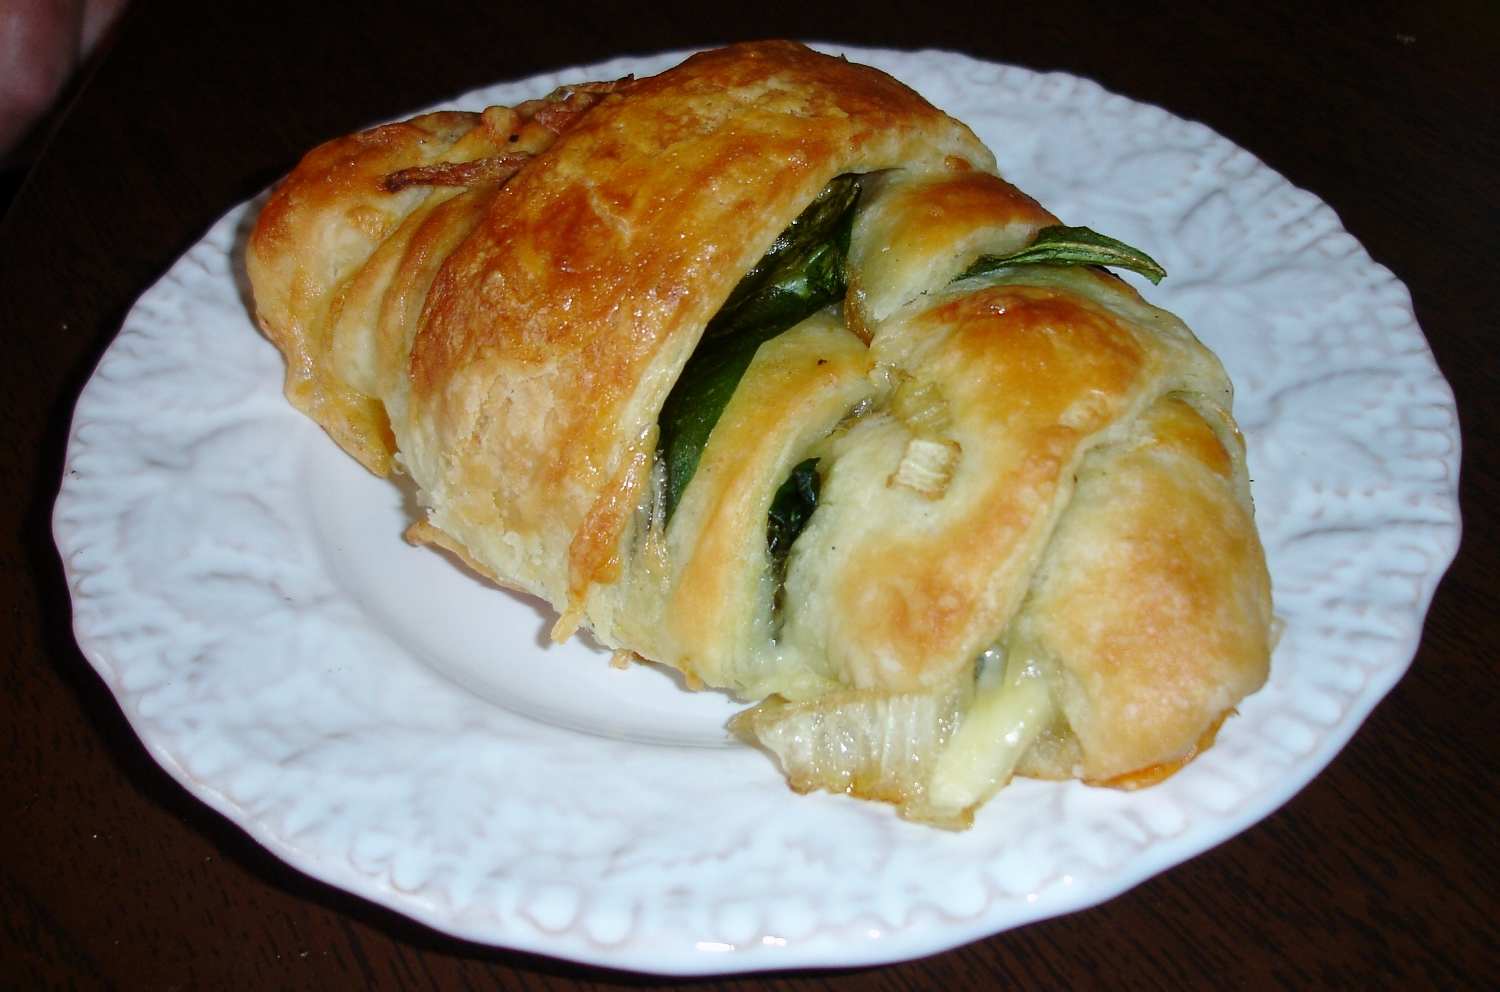 Hand-made croissant are filled with any number of good things to eat, like this one with spinach, onions, and cheese.